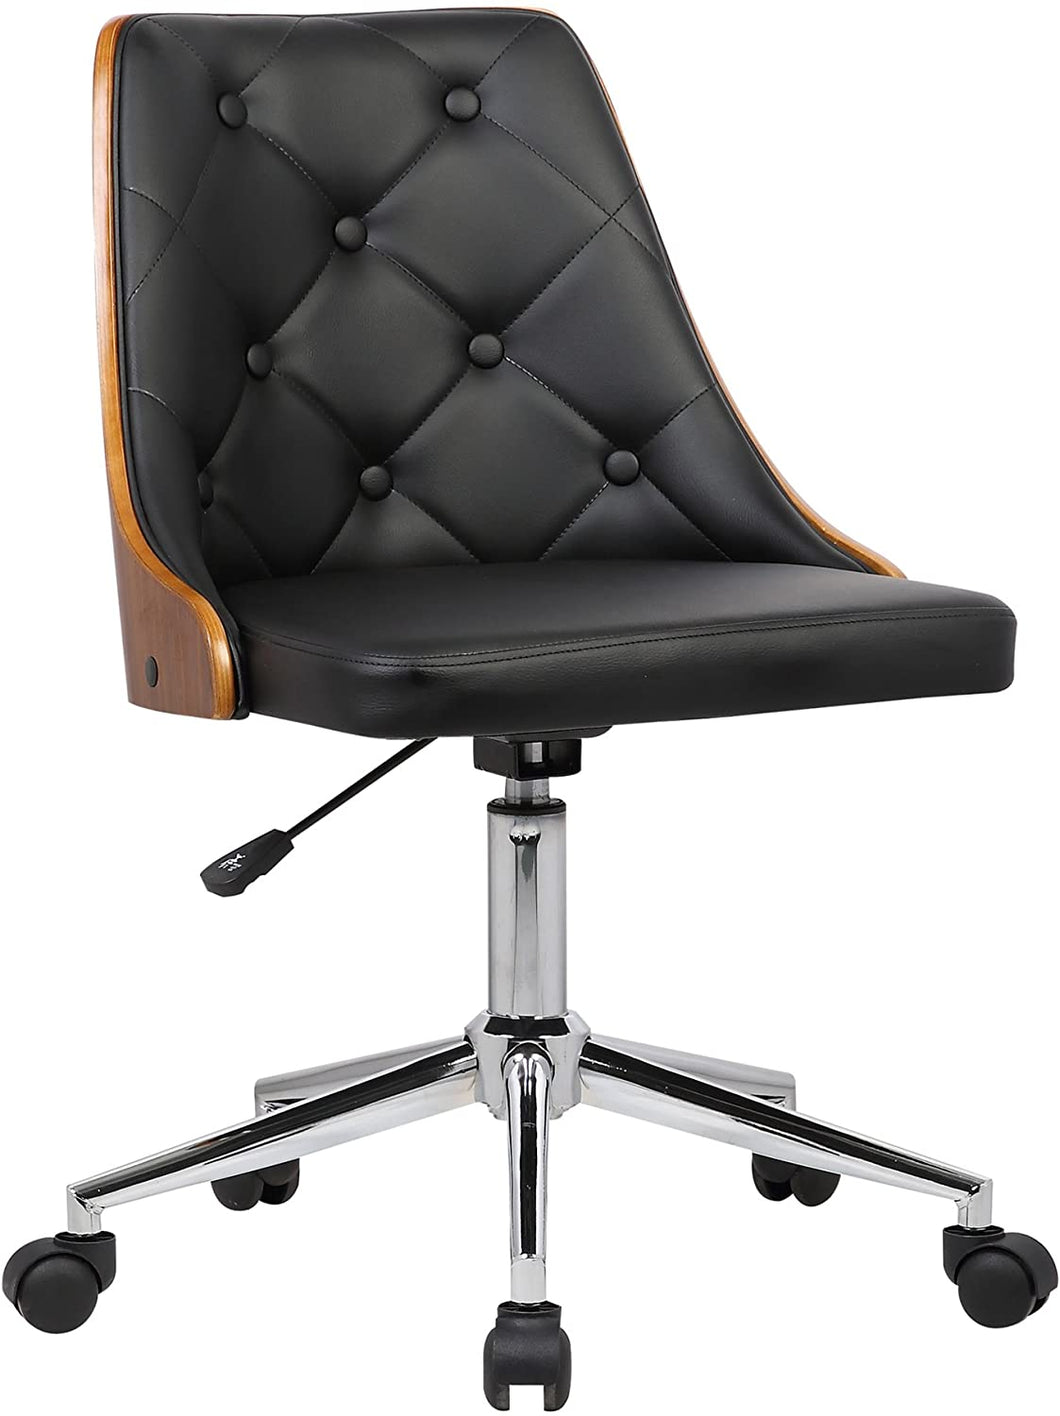 Diamond Office Chair w/ Black faux leather